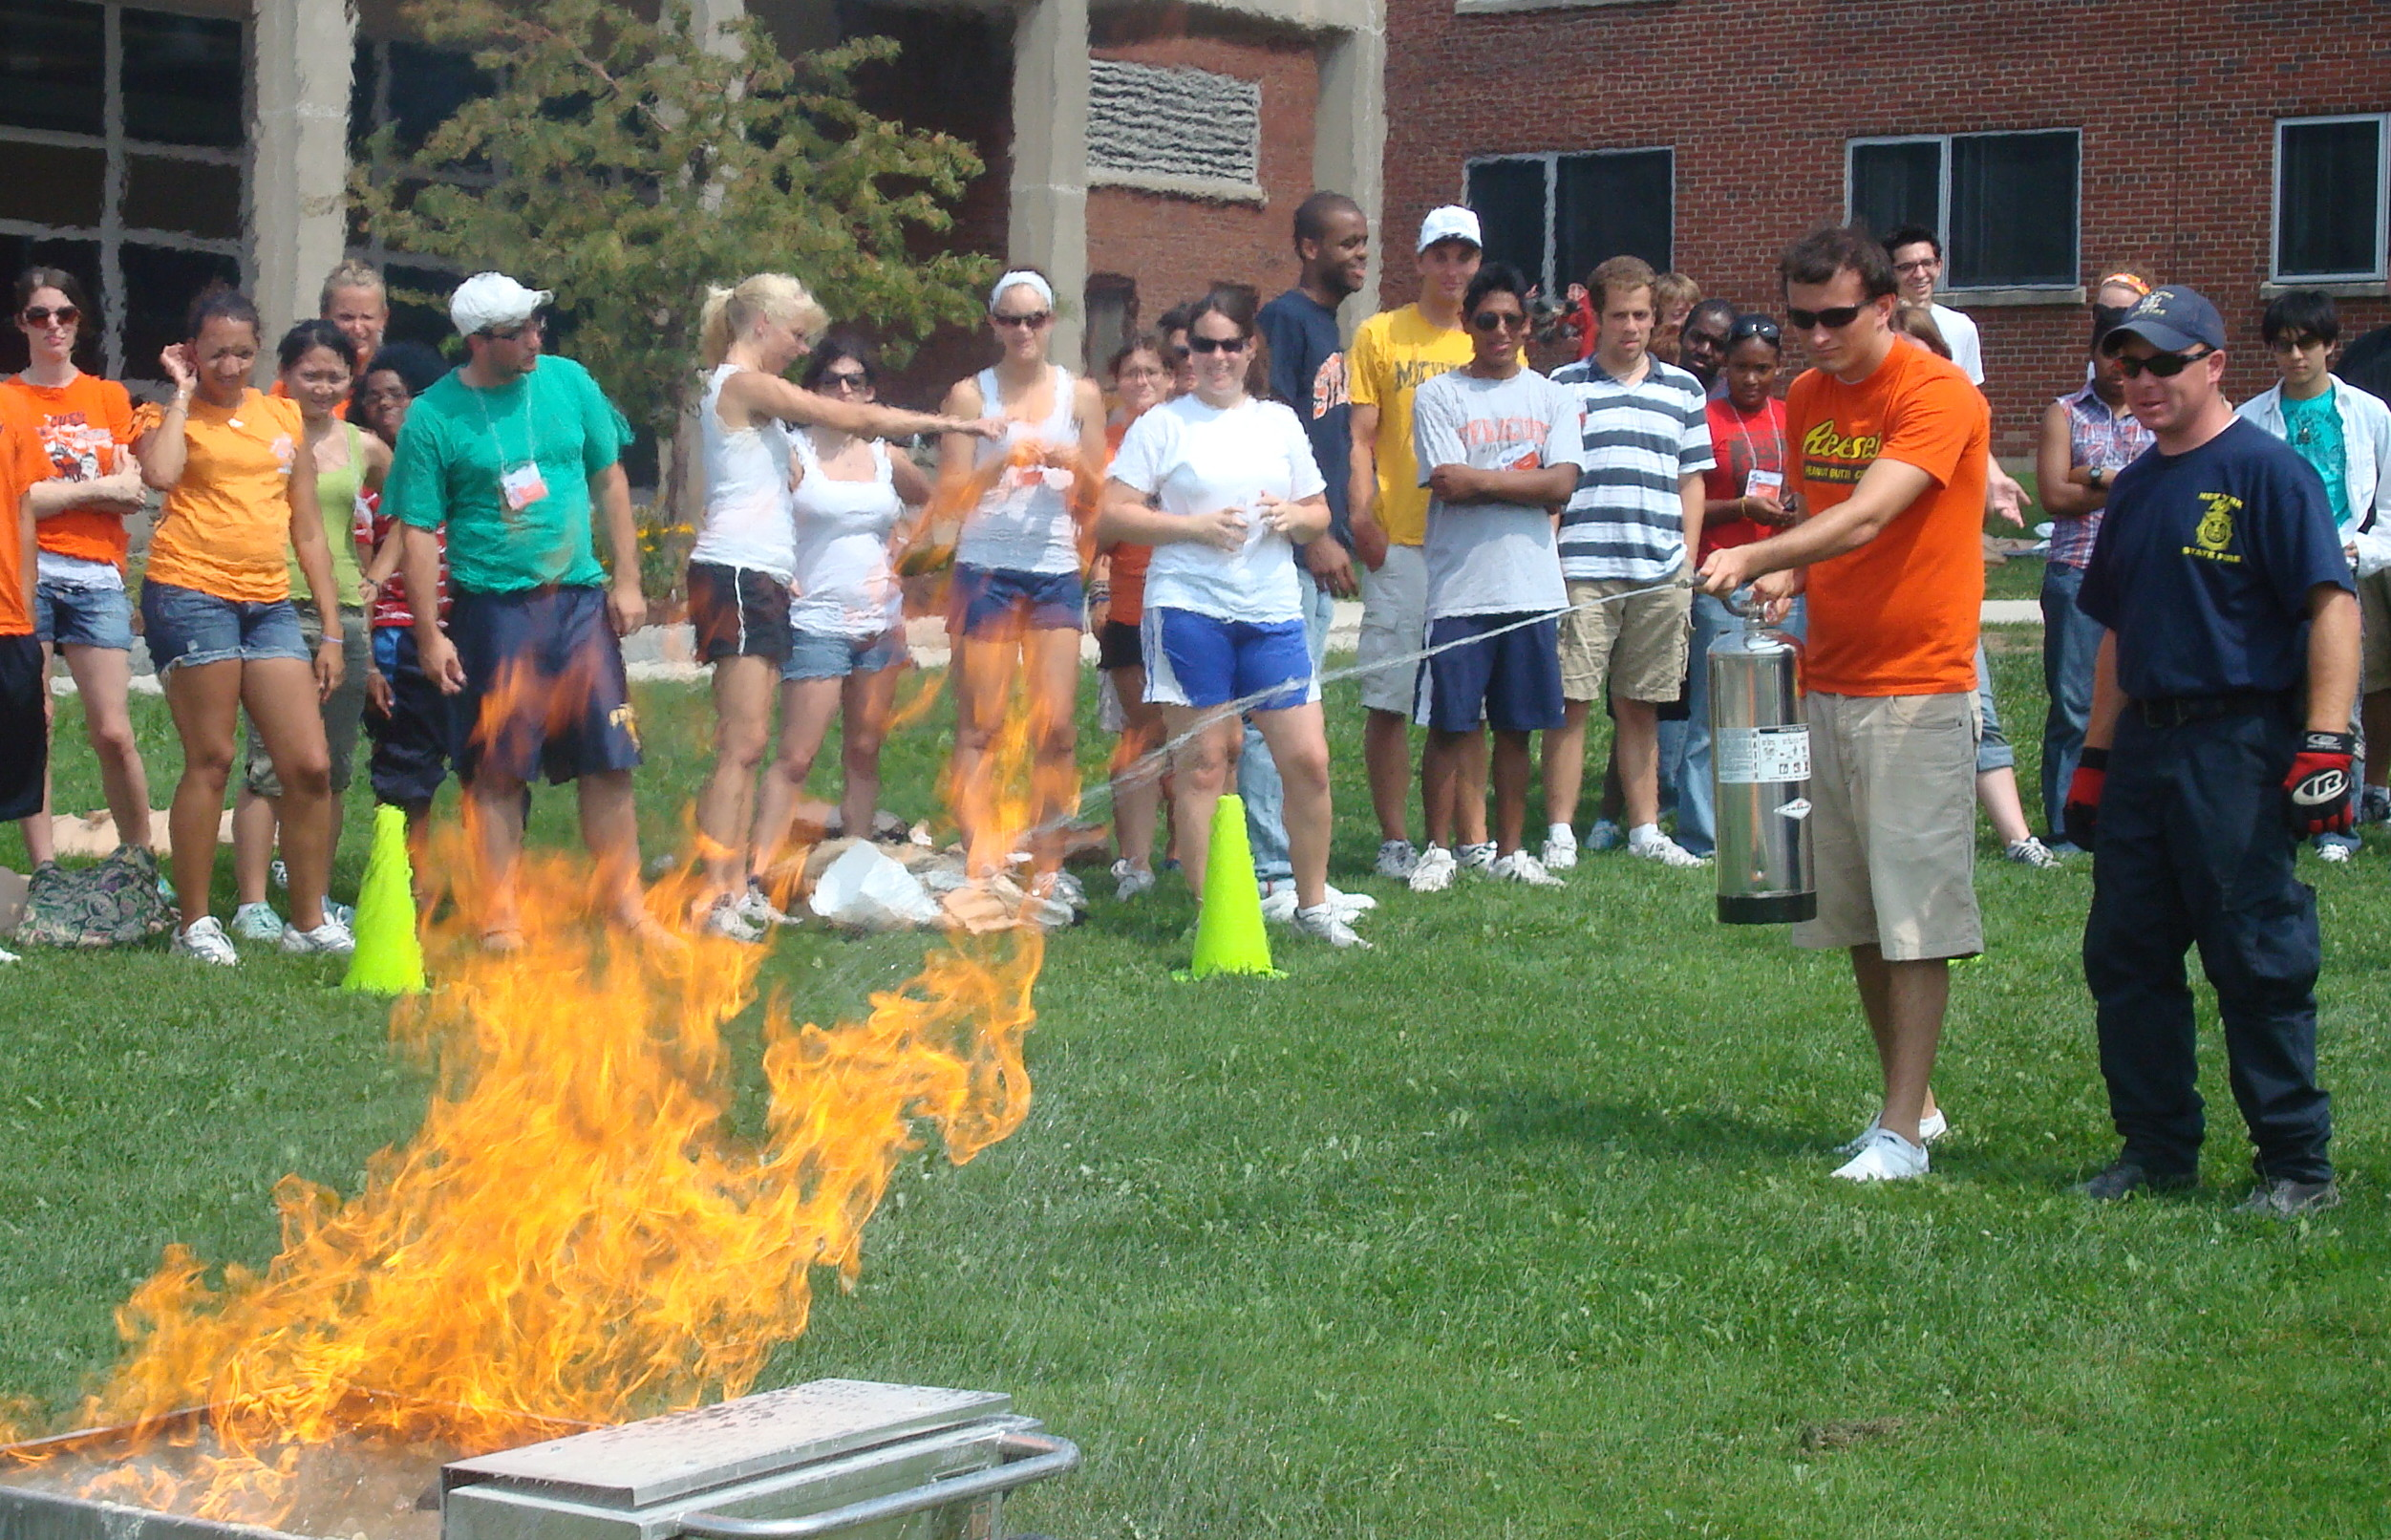 students gather around a grassy area outside day hall for fire safety training